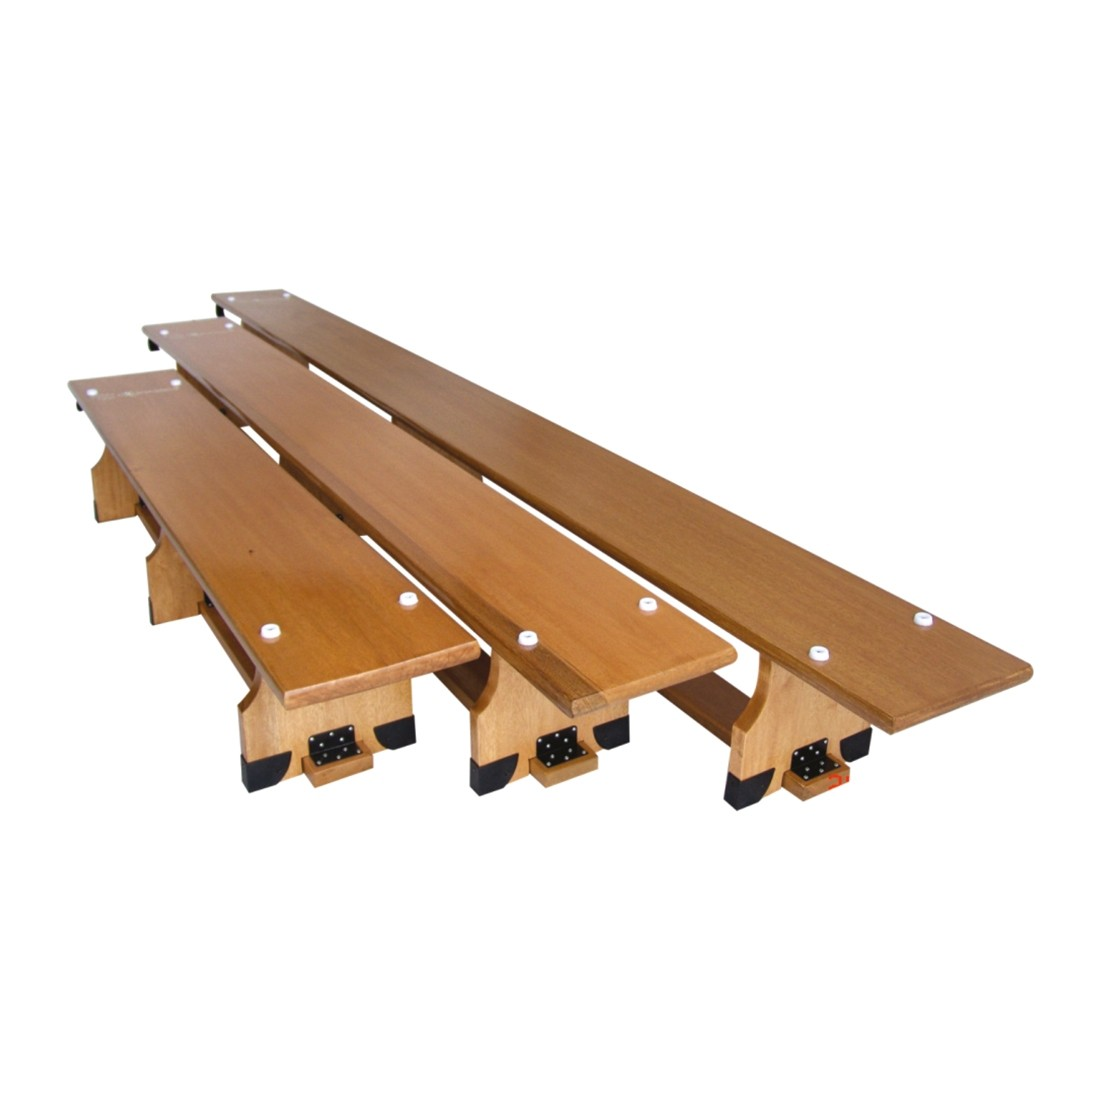 STAG GYMNASTICS BENCH  MADE UP OF SUPERIOR WOOD  2MTR X 23CM X 30CM